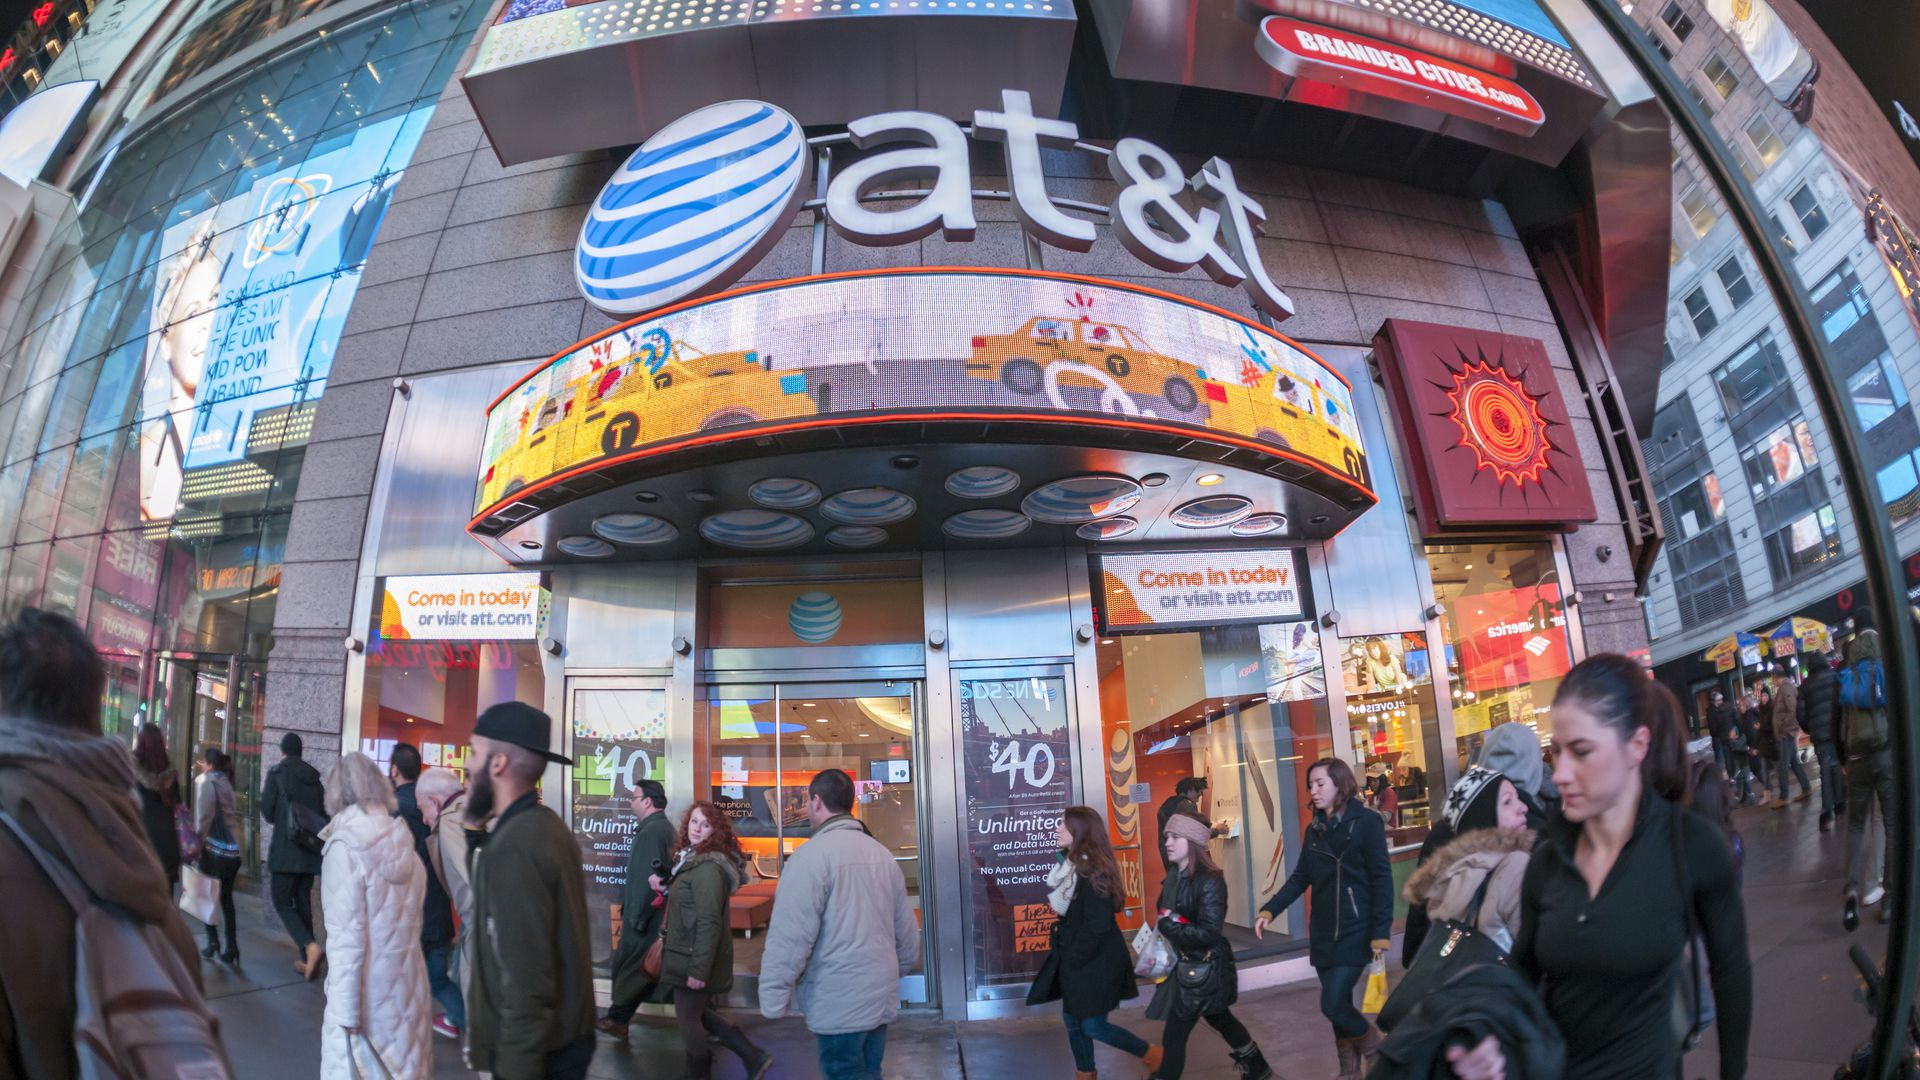 AT&T store in Times Square